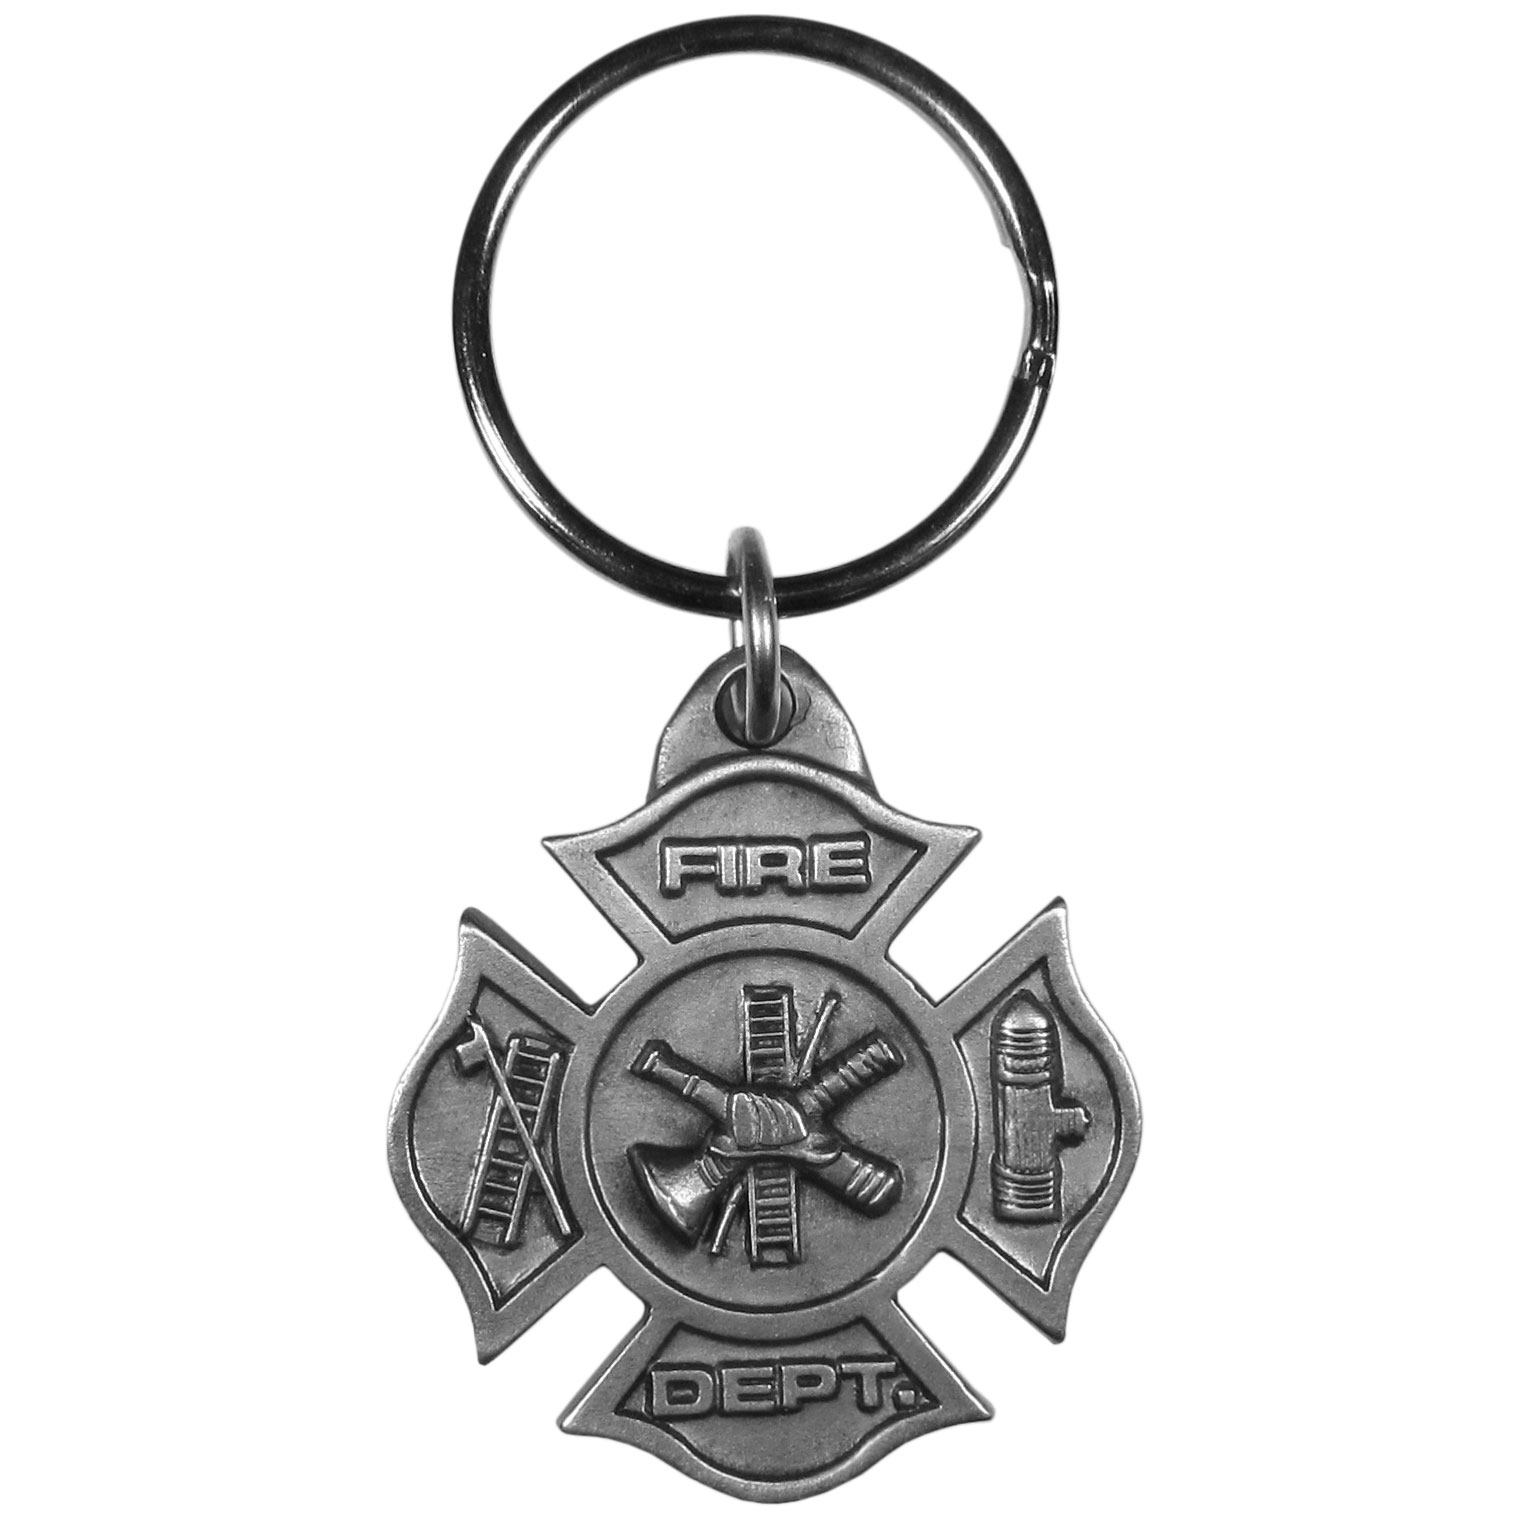 Maltese Cross Firefighter Antiqued Key Chain - This key chain celebrates the proud firefighter traditions with intricately carved details showing off the tools of the trade on the traditional maltese cross. Since these key rings are fully metal they stand up the rigorous day to day use and will keep looking great for years to come. The original designs are a great way to express your personal style while keeping your house and auto keys organized.